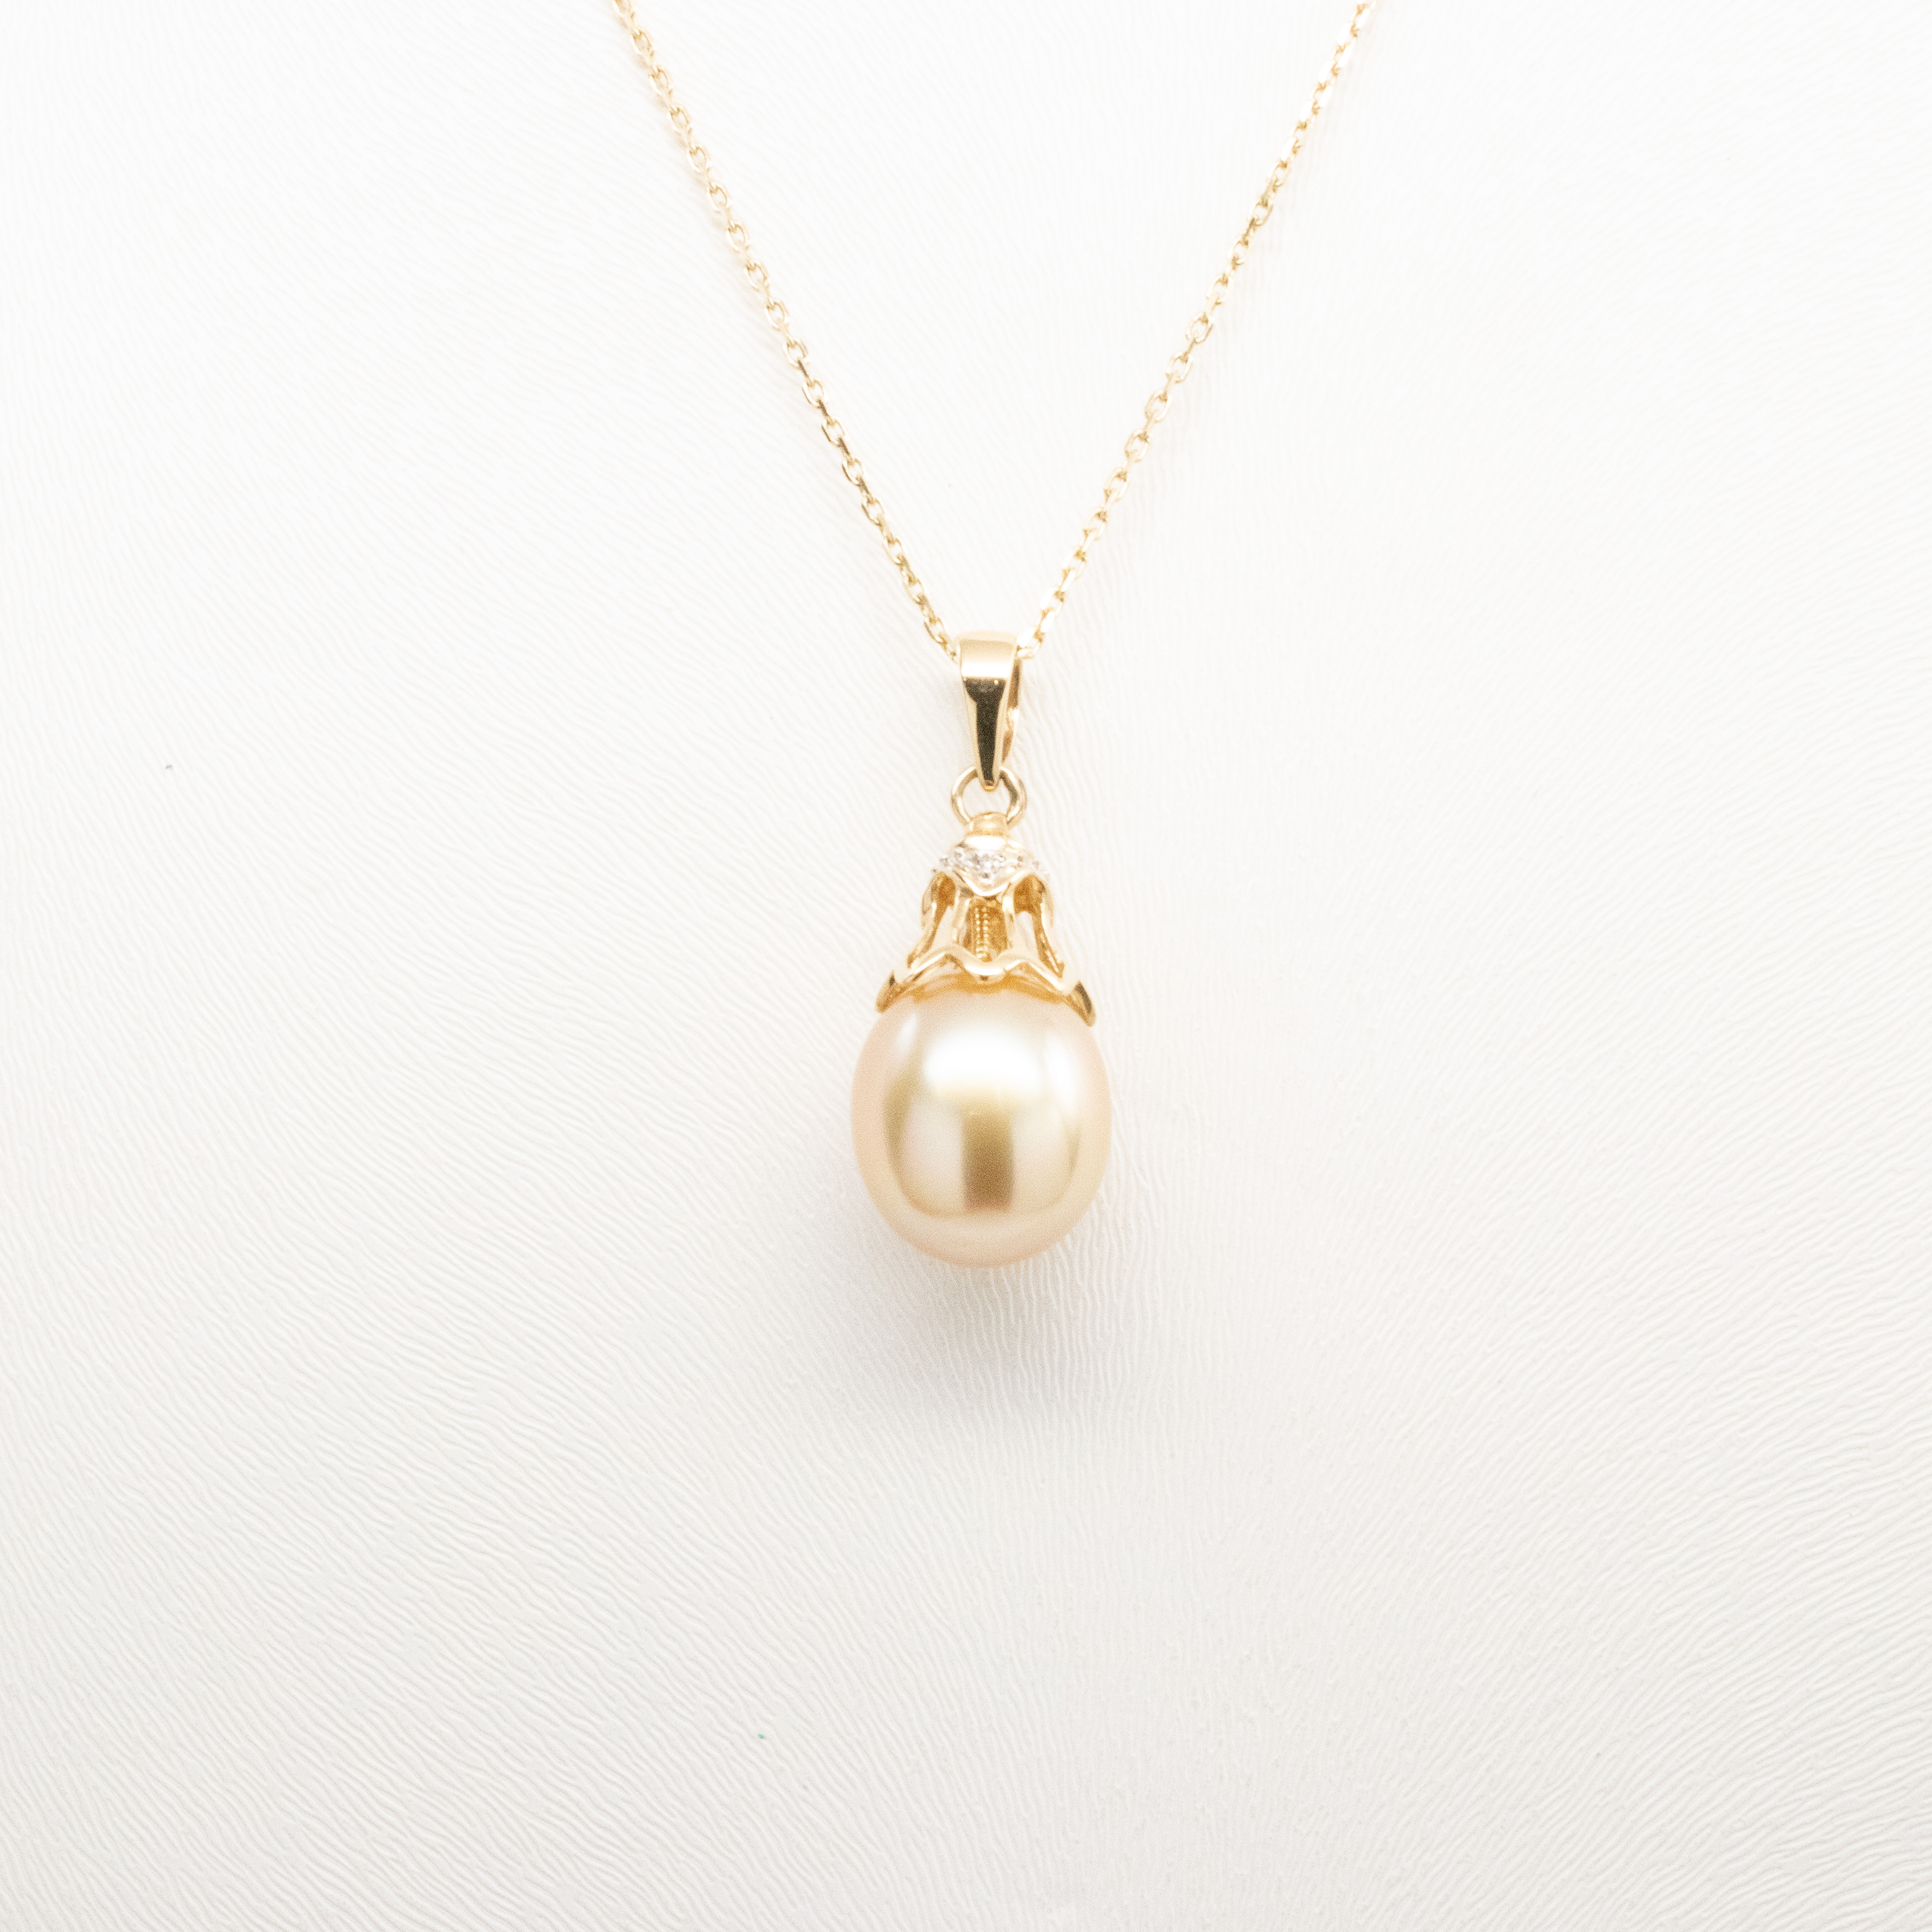 Oval Pearl Pendant with Diamond Accents, 14k Yellow Gold